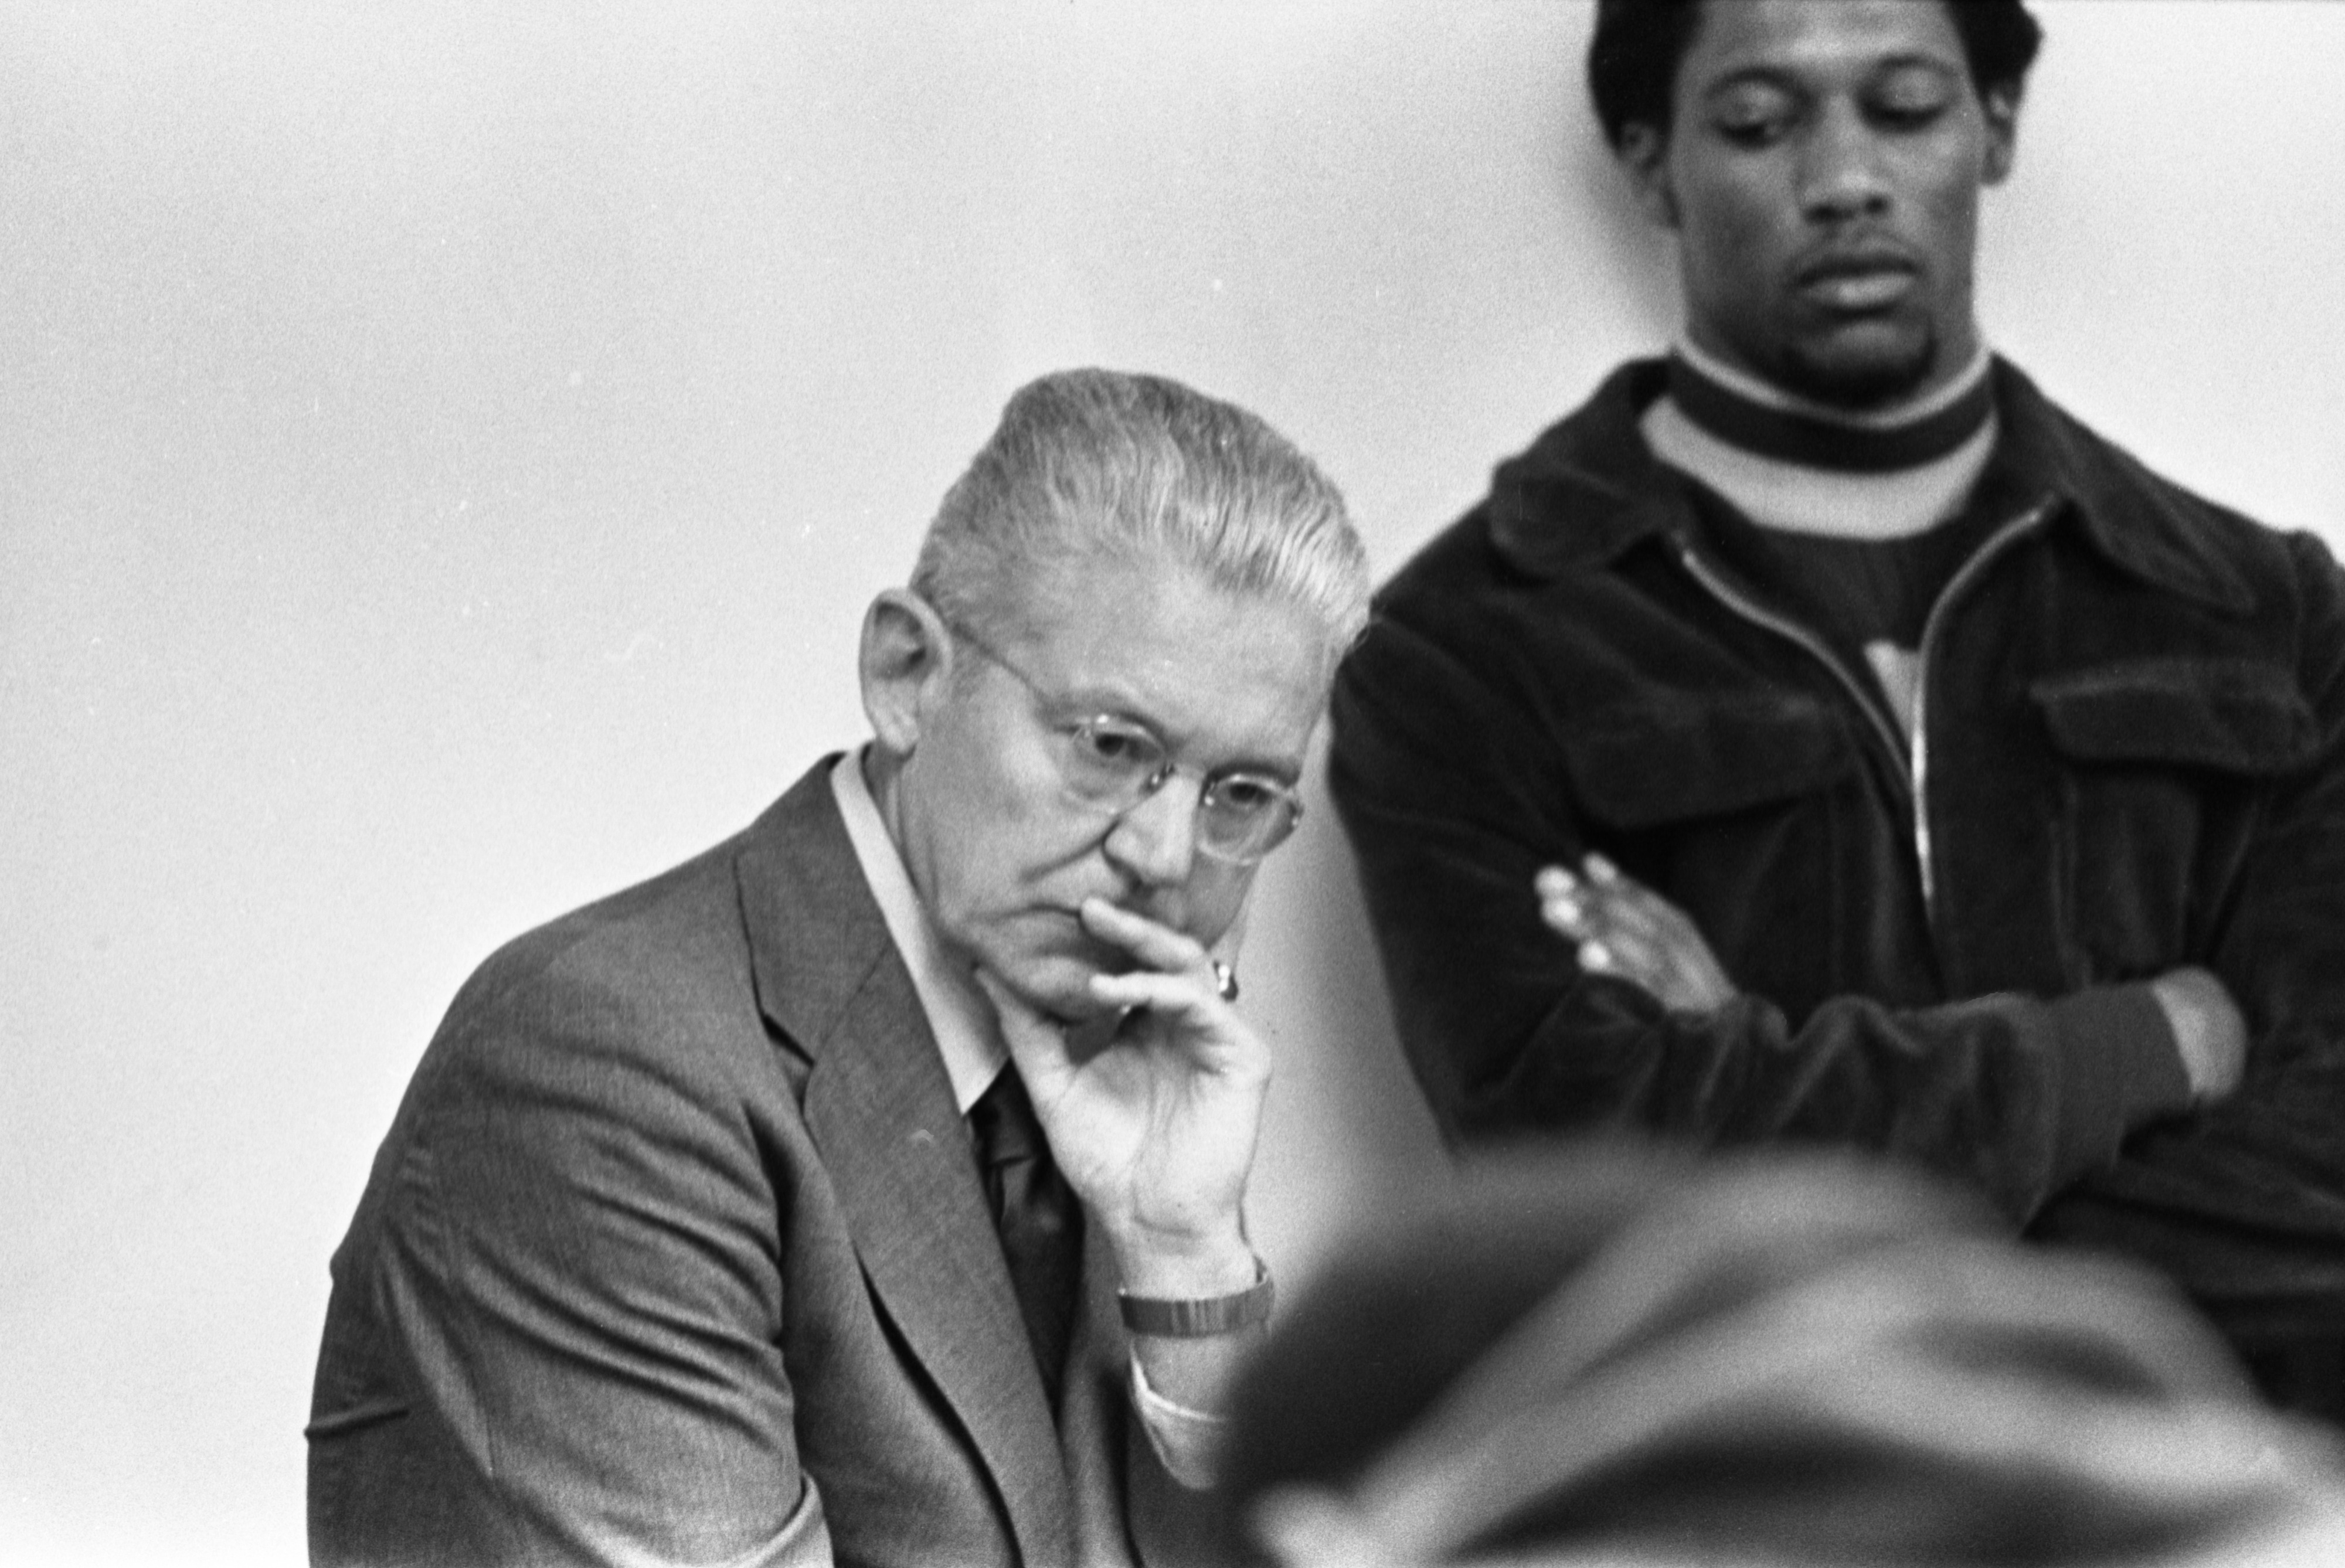 Robben Fleming Listens To Black United Front Students & Supporters, February 18, 1975 image